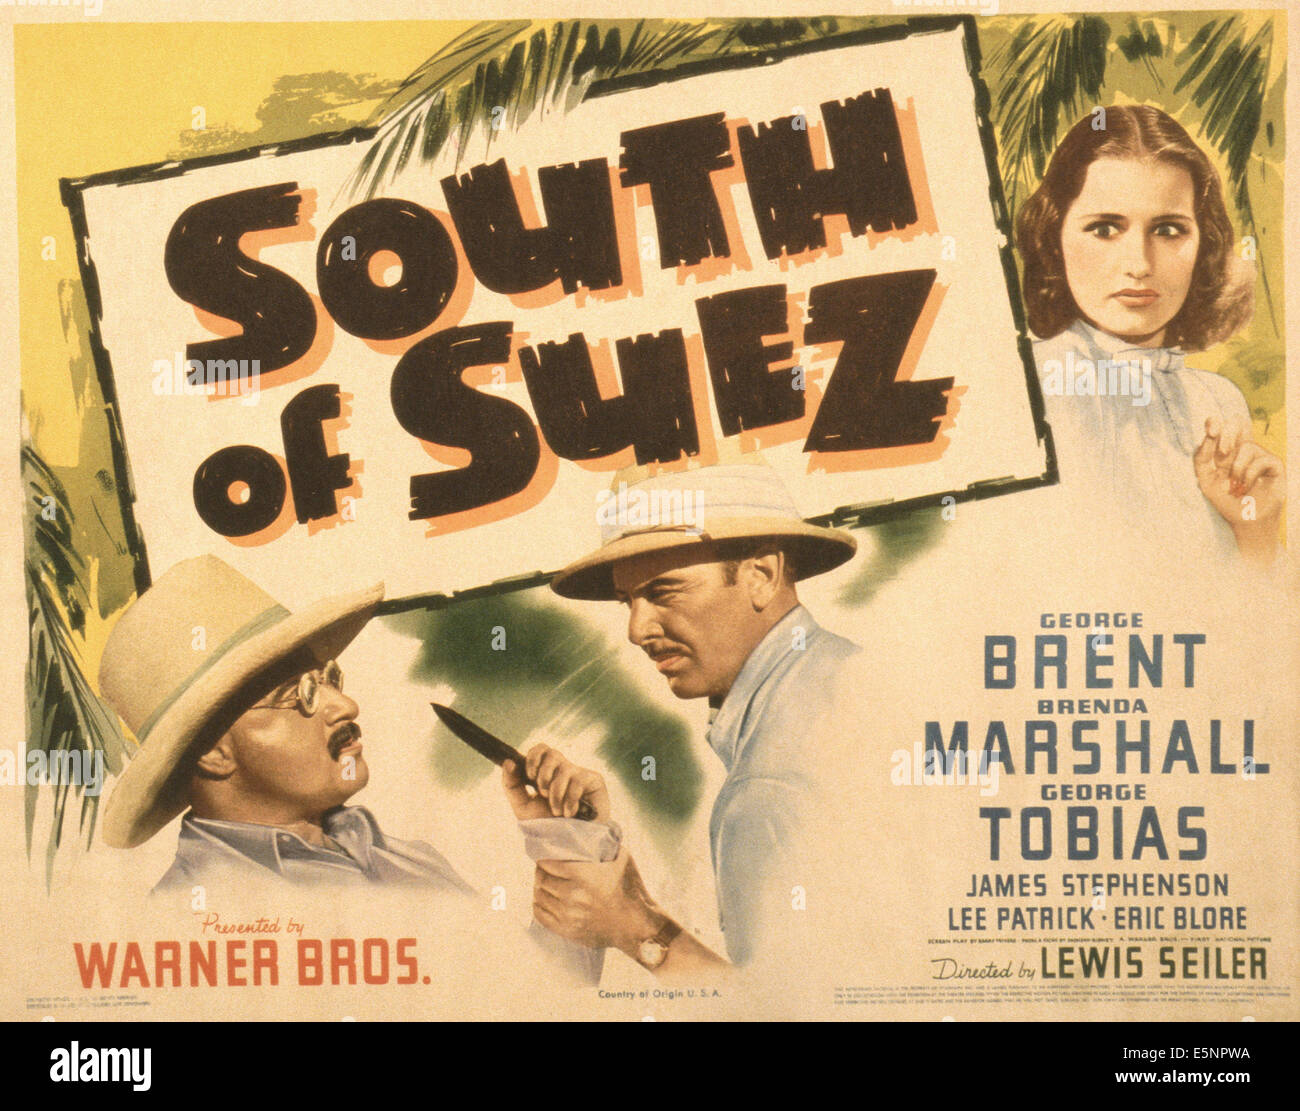 south-of-suez-us-poster-from-left-george-tobias-george-brent-brenda-E5NPWA.jpg